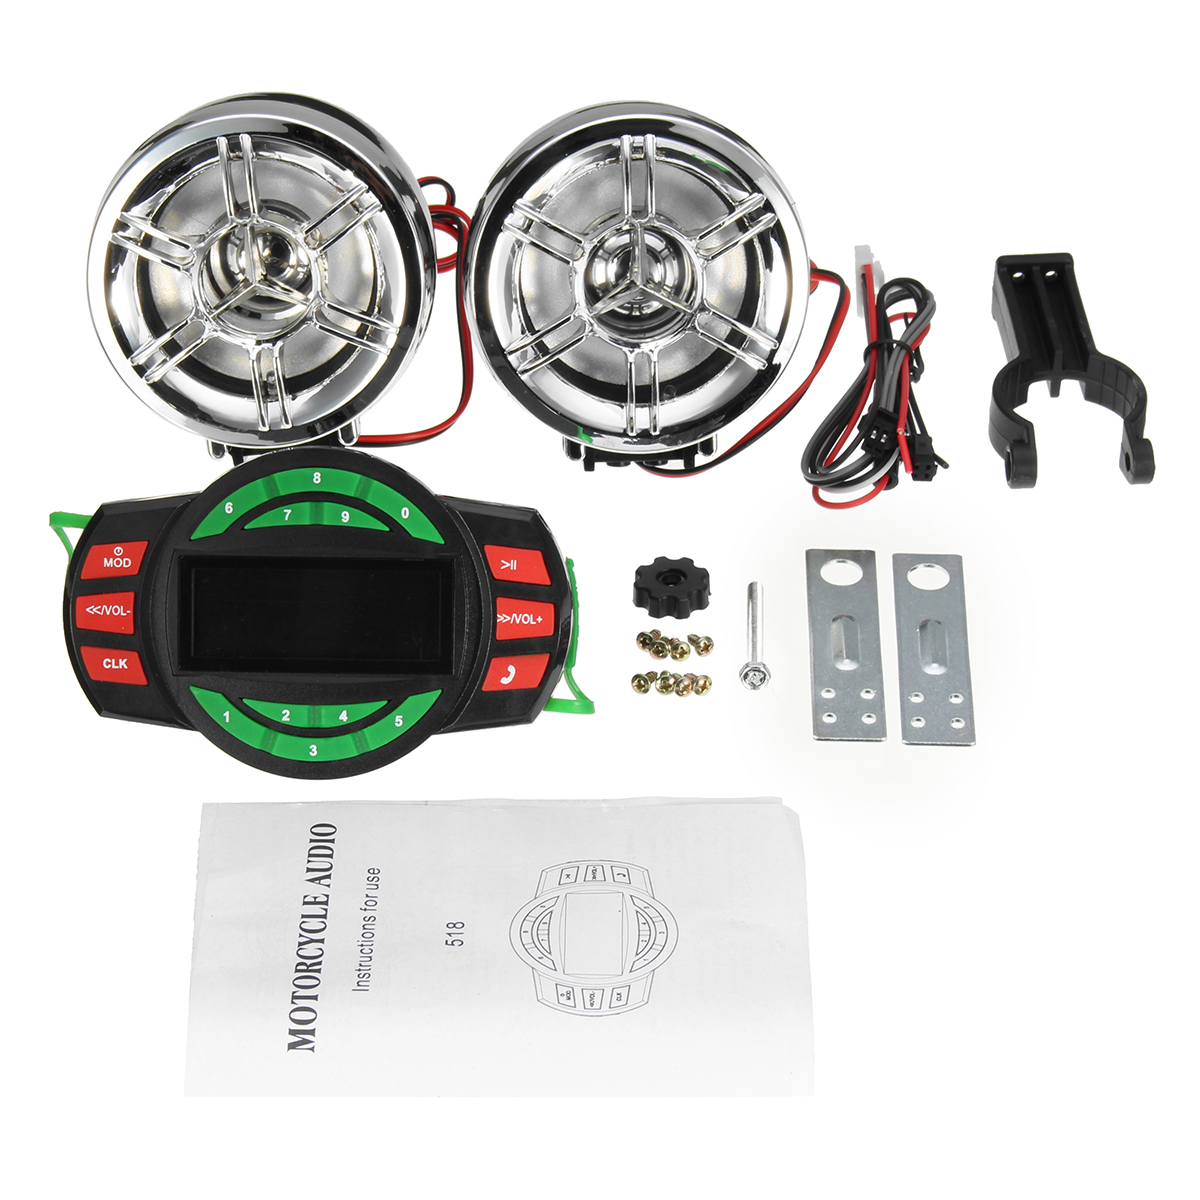 3'' Bluetooth Motorcycle Handlebar Audio System USB motorcycleaccessorie SD FM Radio MP3 Speakers 12V